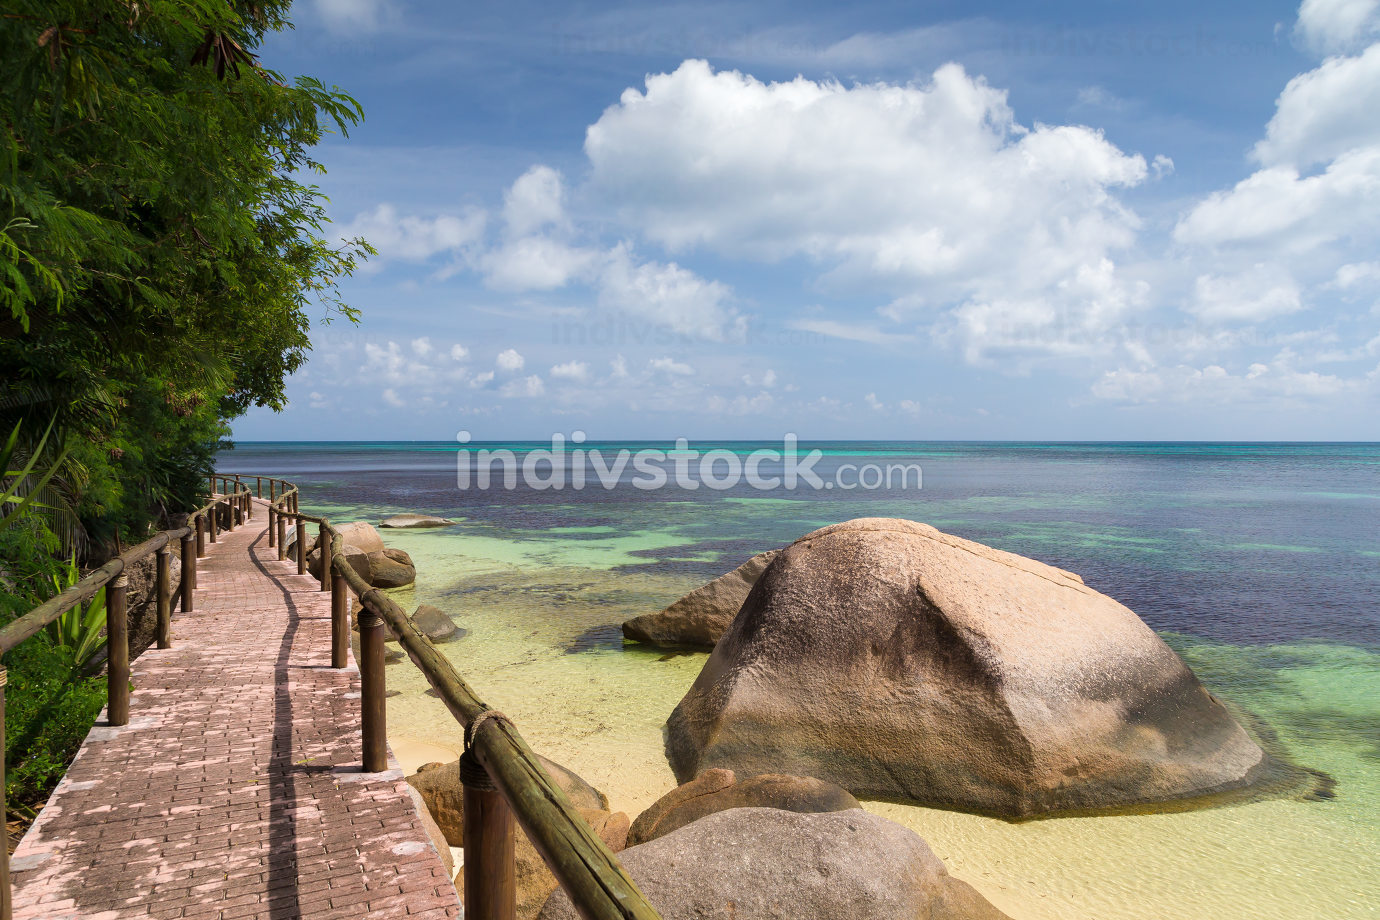 Pathway by the ocean with big stones and green plants